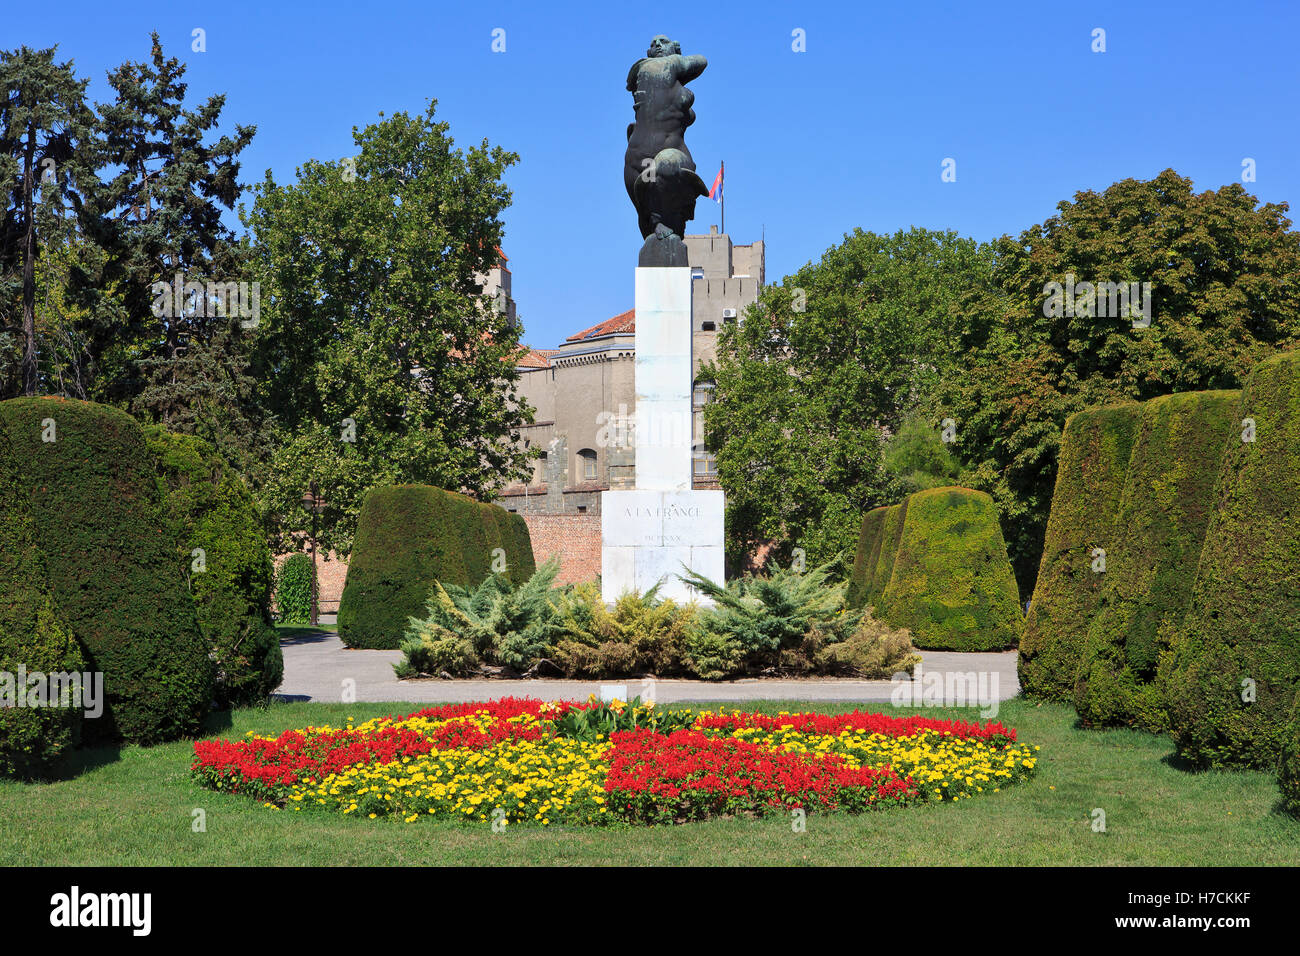 World War I monument of Gratitude to France (erected in 1930) at the Kalemegdan Fortress in Belgrade, Serbia - Stock Image